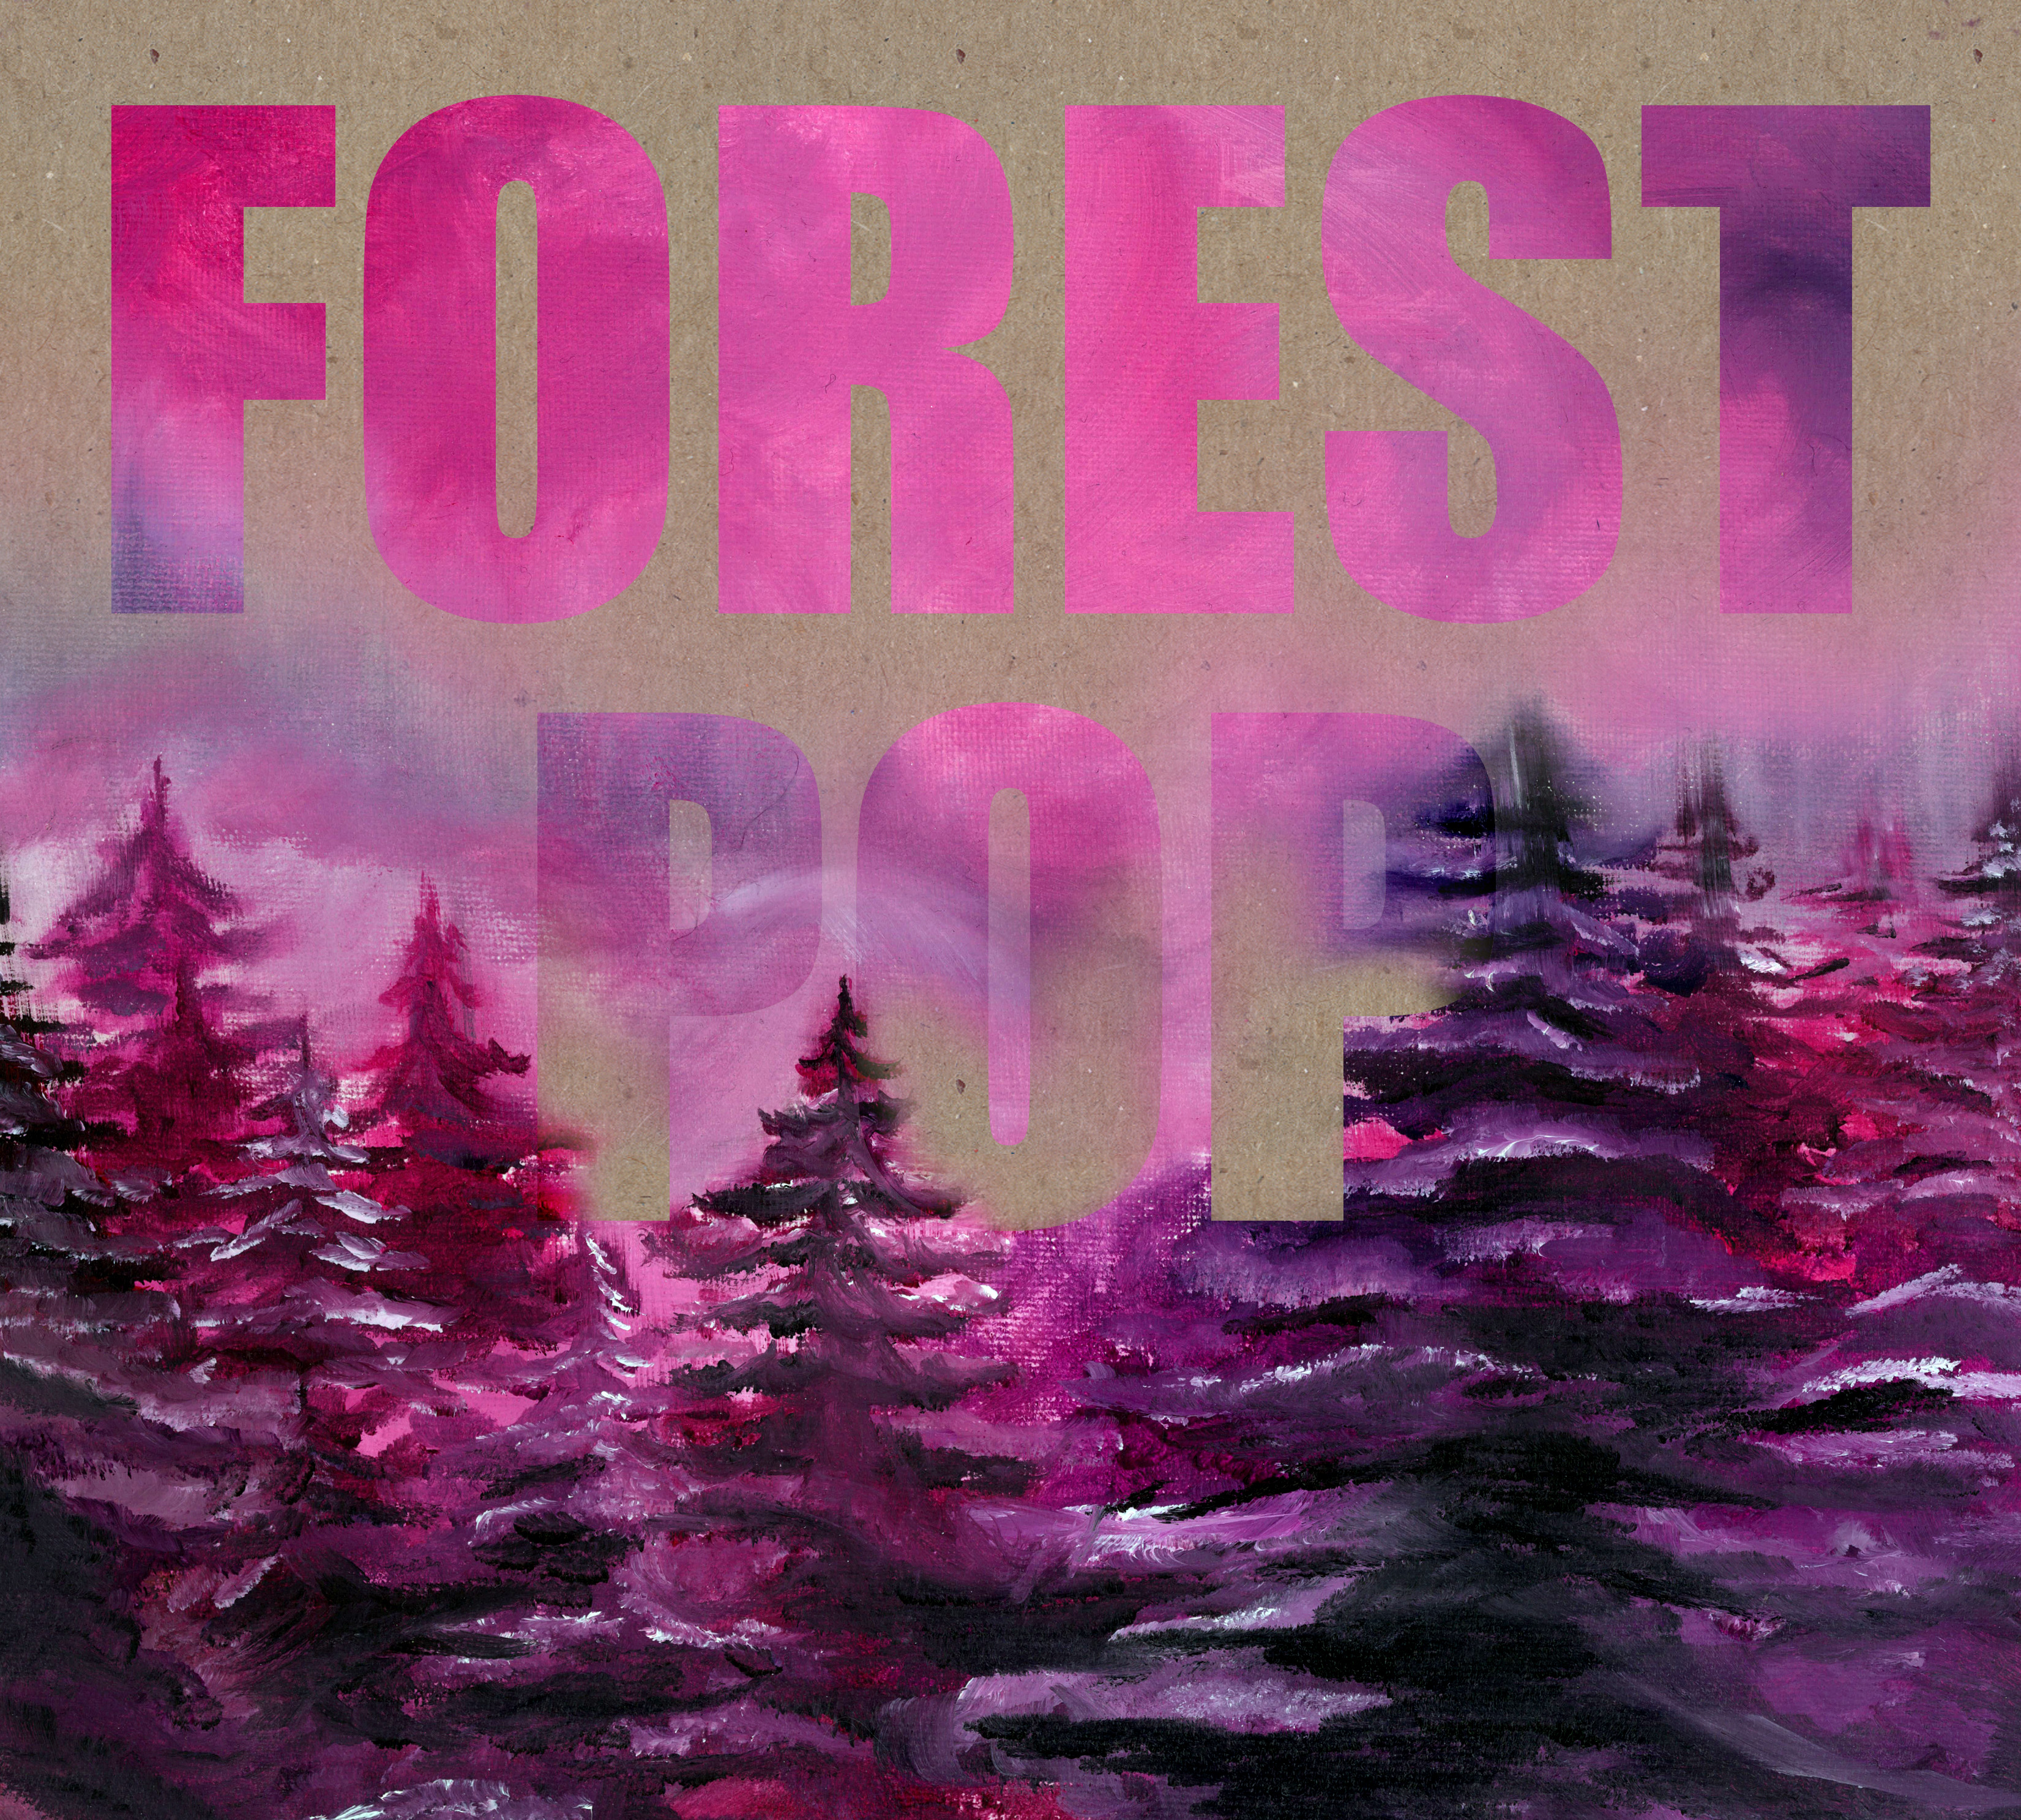 """FOREST POP"" by Hanna & Kerttu, out July 2015"